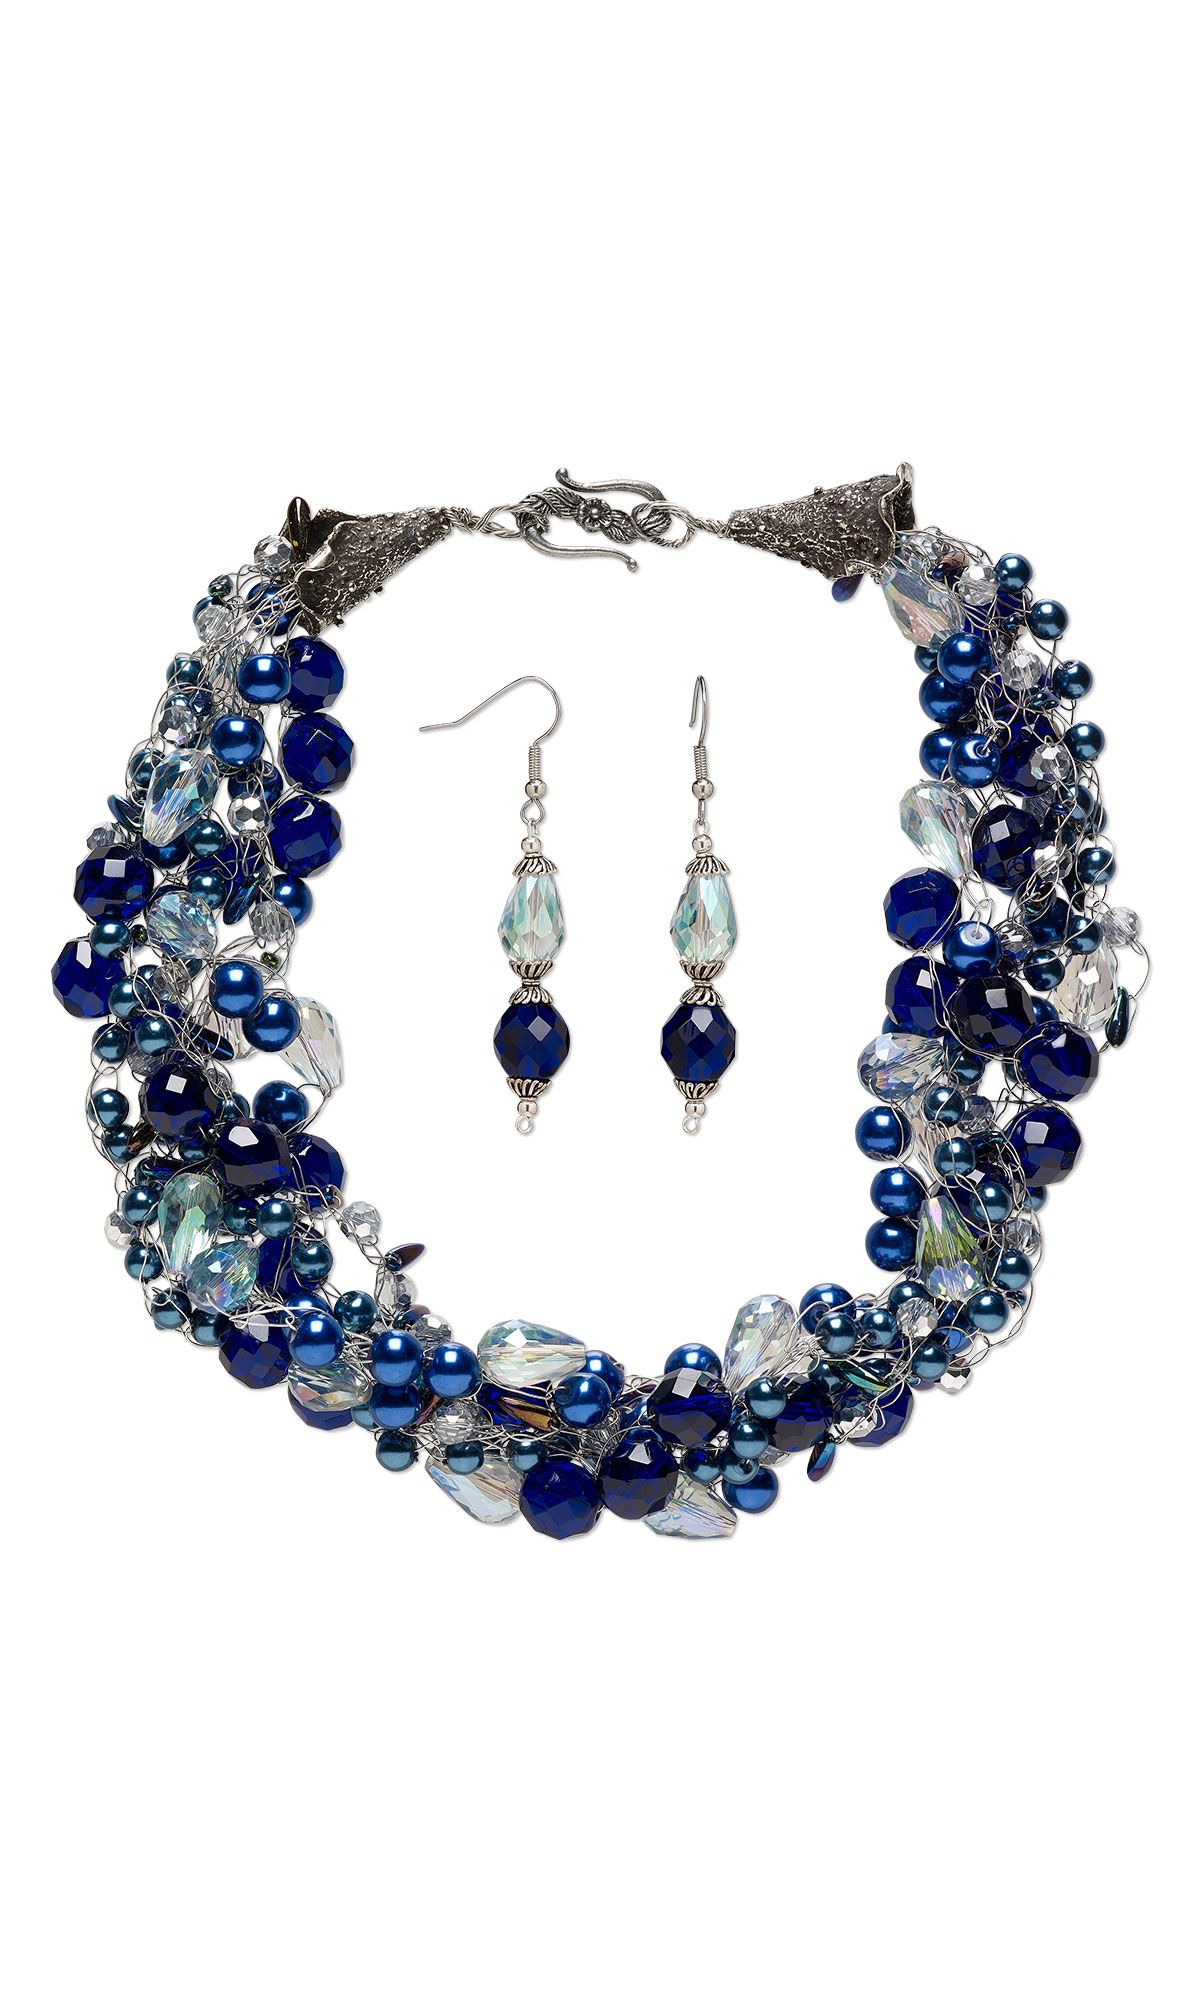 jewelry design single strand necklace and earring set with glass